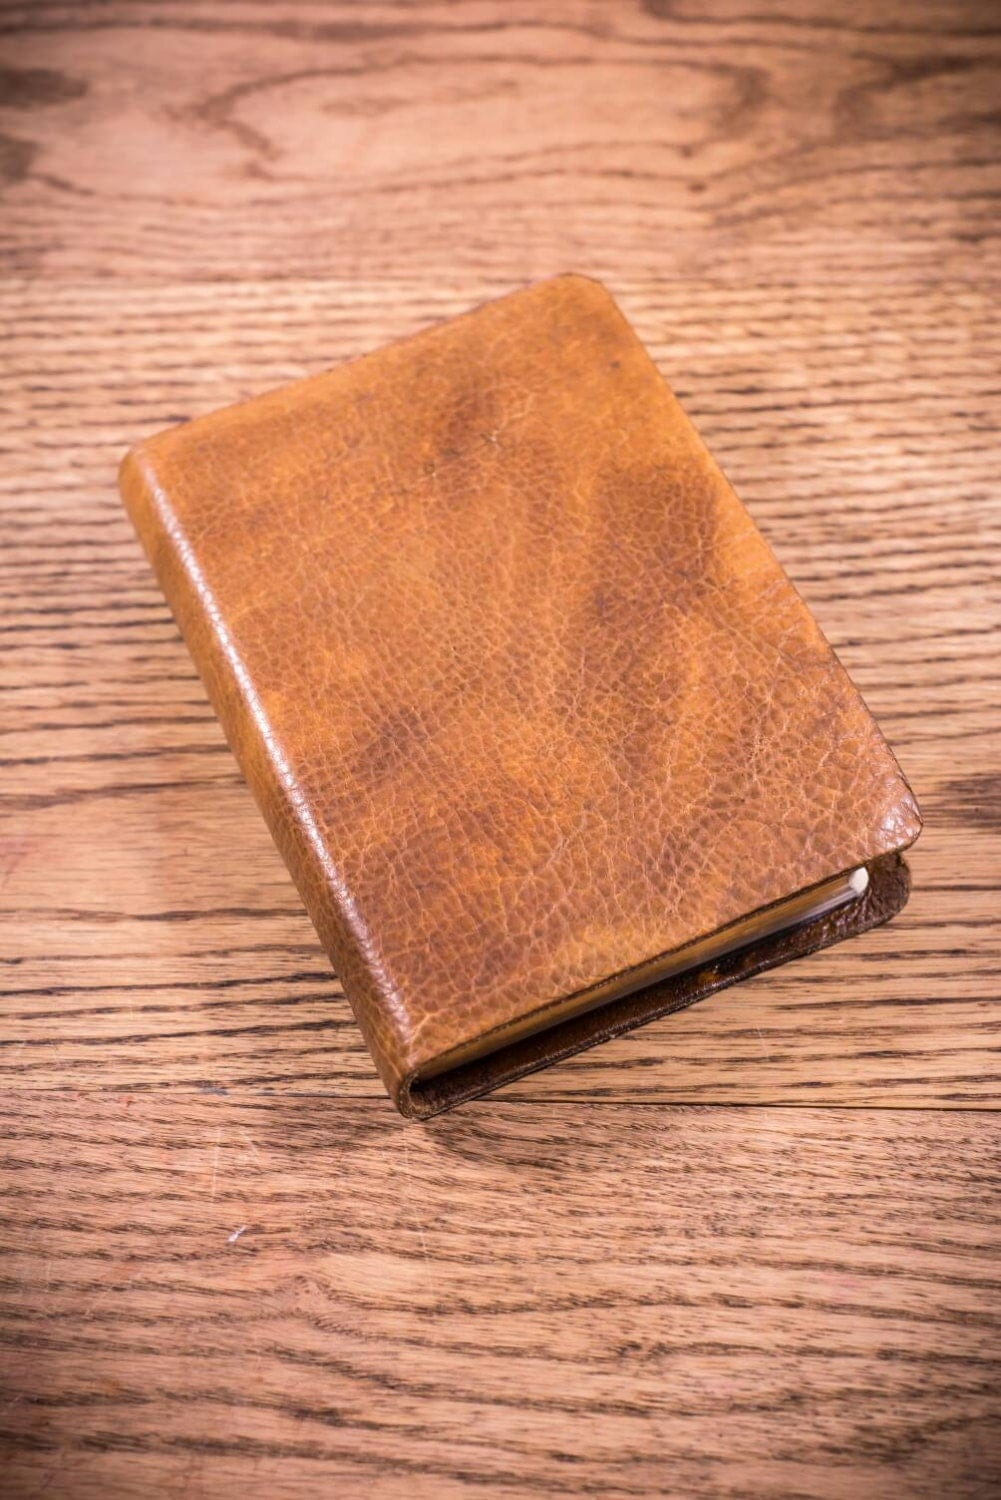 Amazon.com: Customer reviews: ESV Study Bible (Cowhide ...